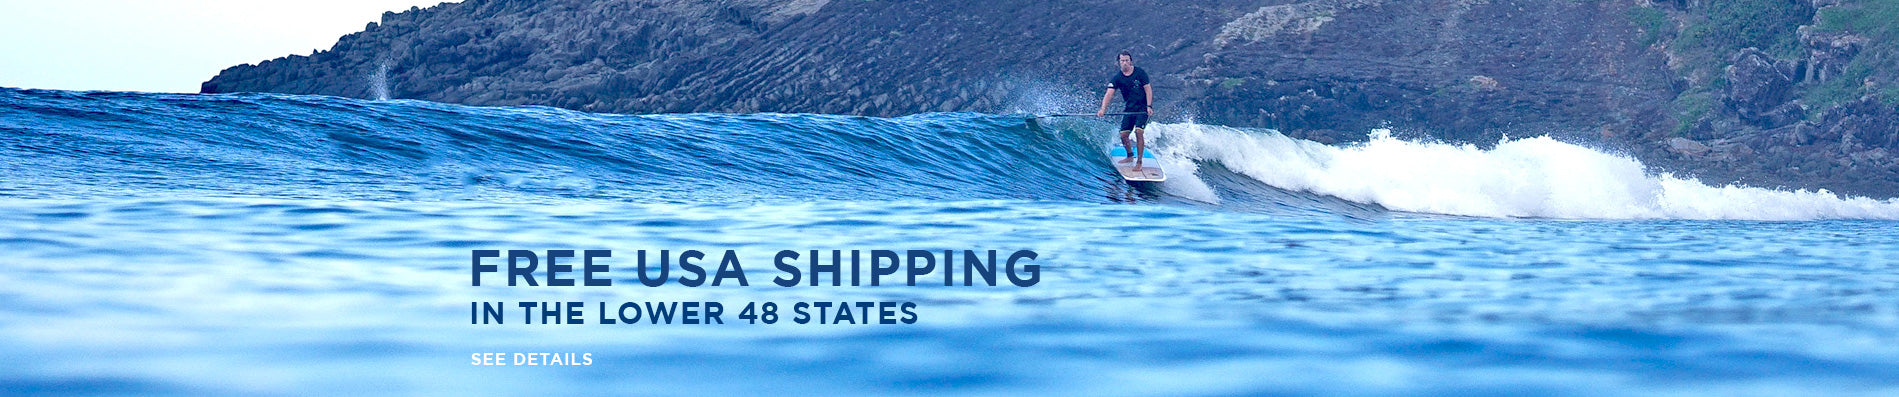 Free USA shipping in the lower 48 states